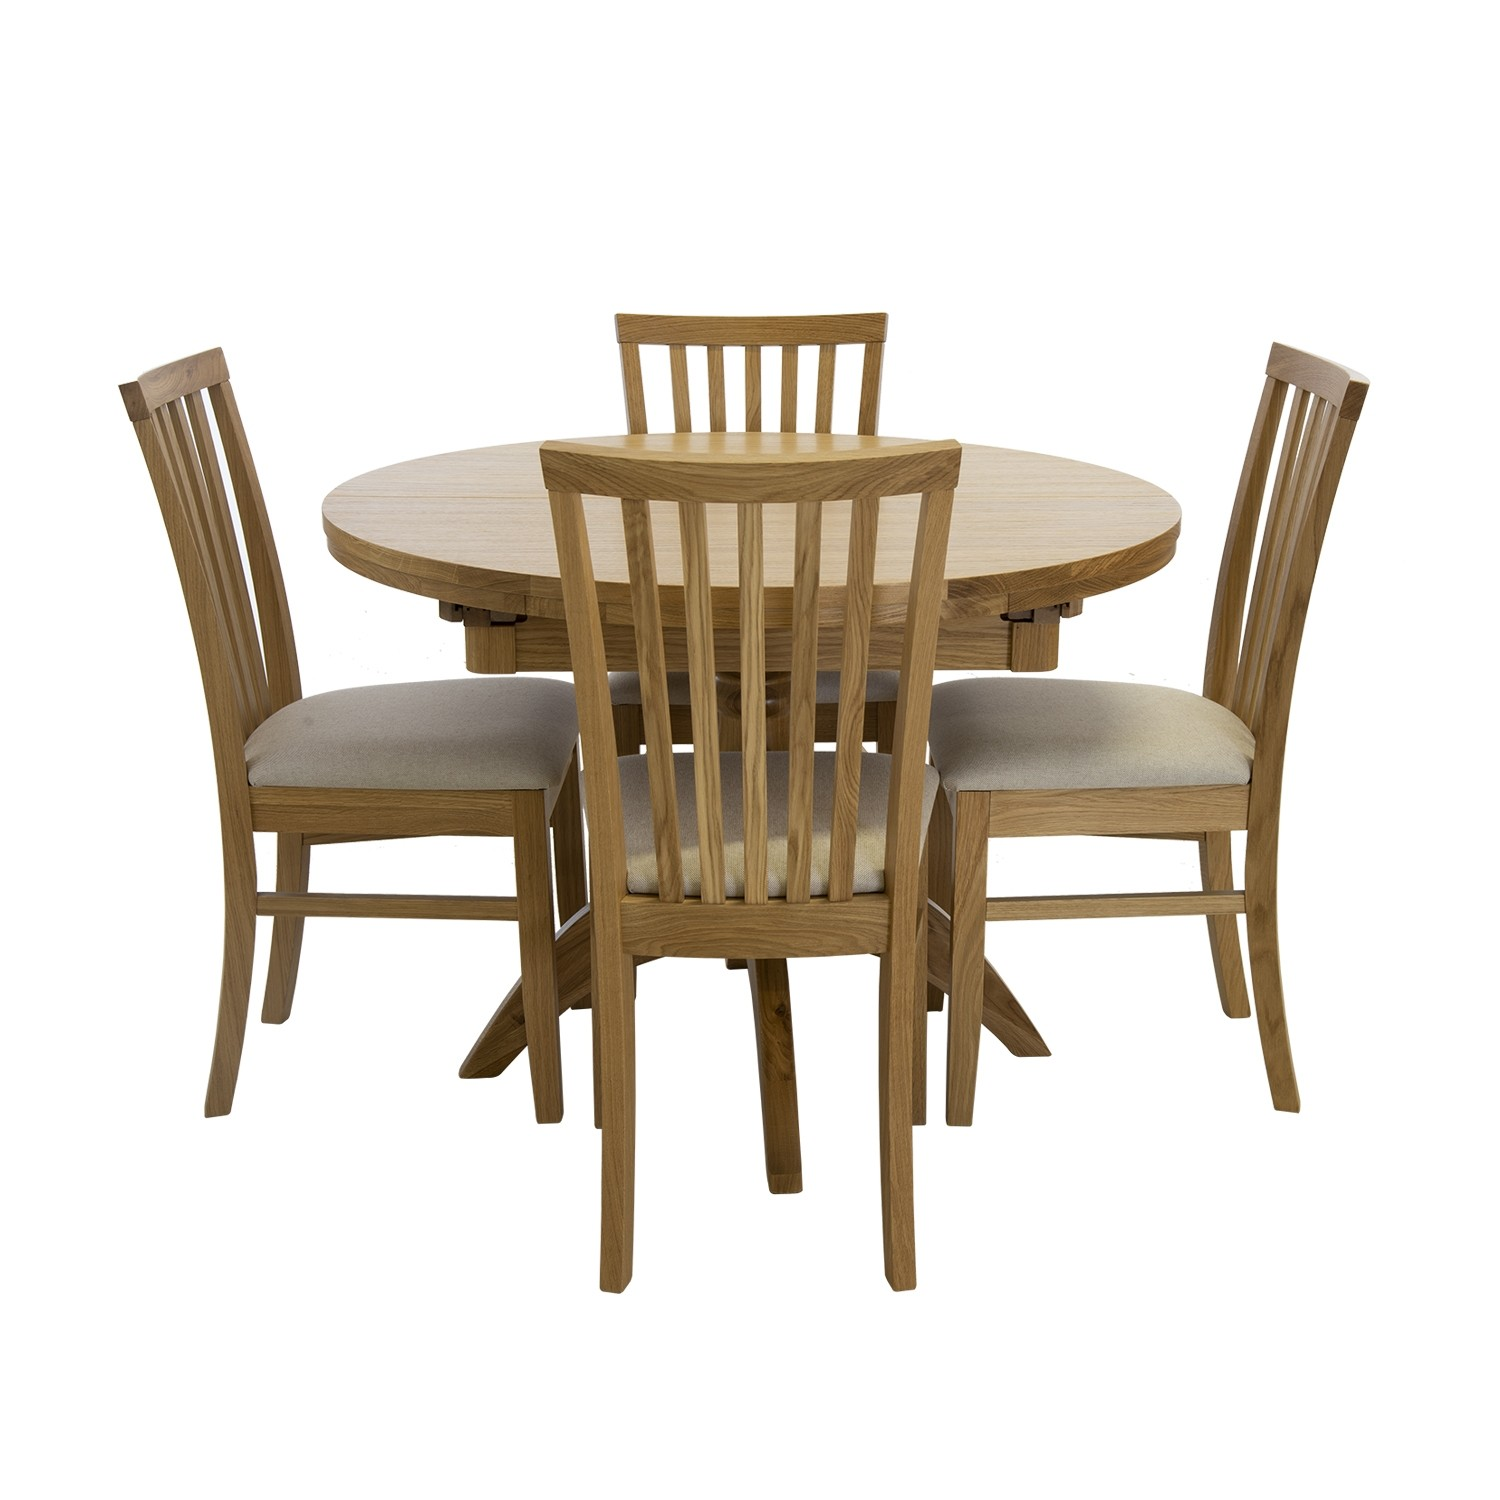 Marseille Round Extending Table 4 Chairs Dining Set